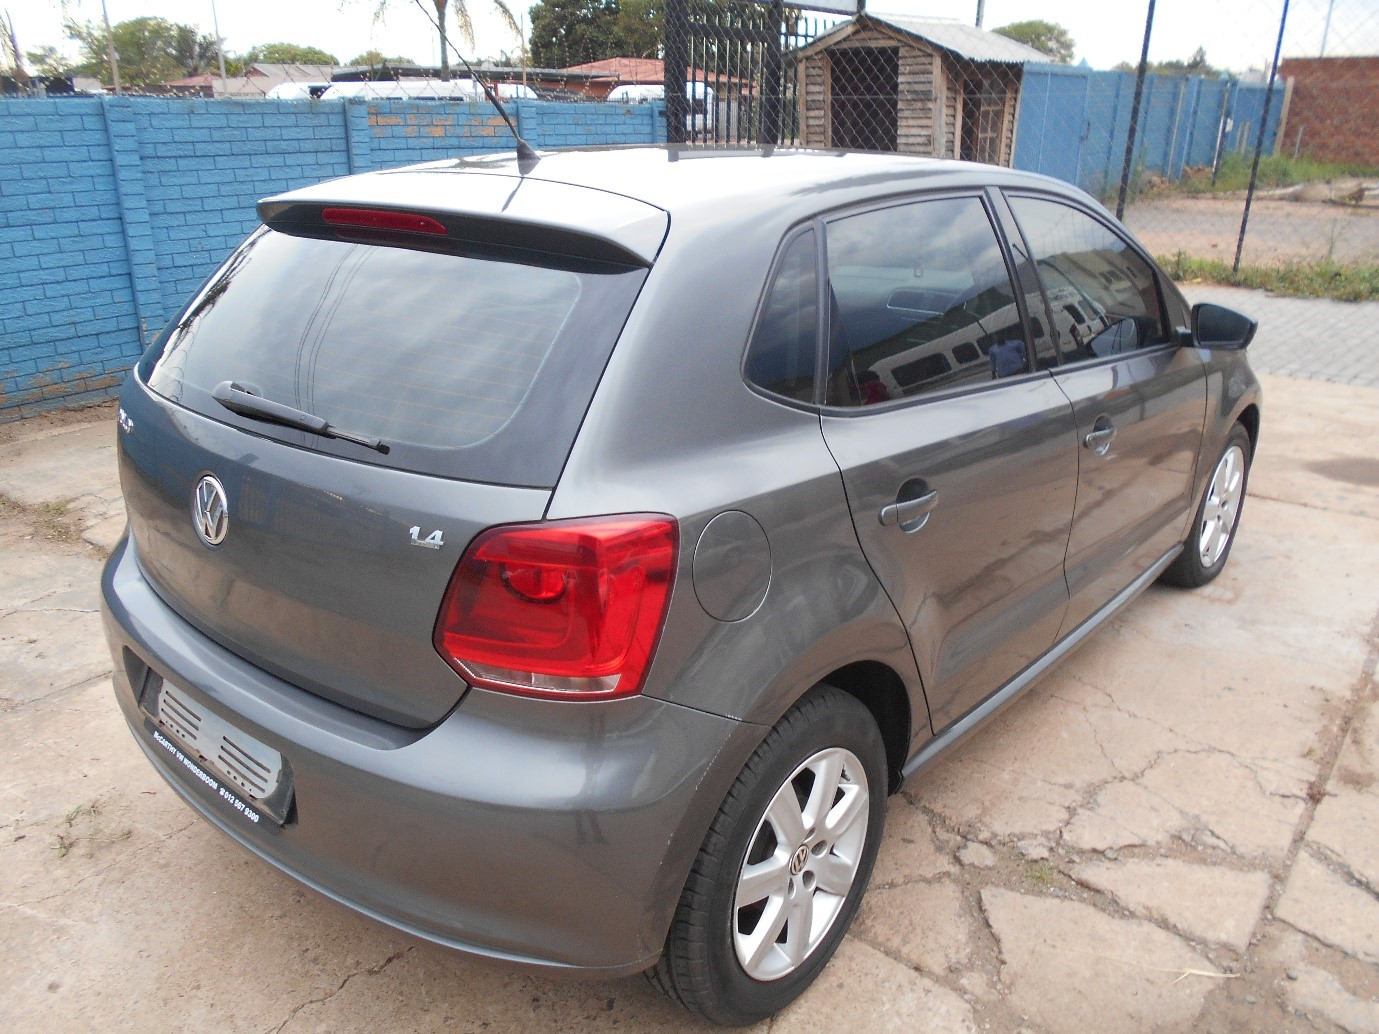 2010 VW Polo Stripping For Spares